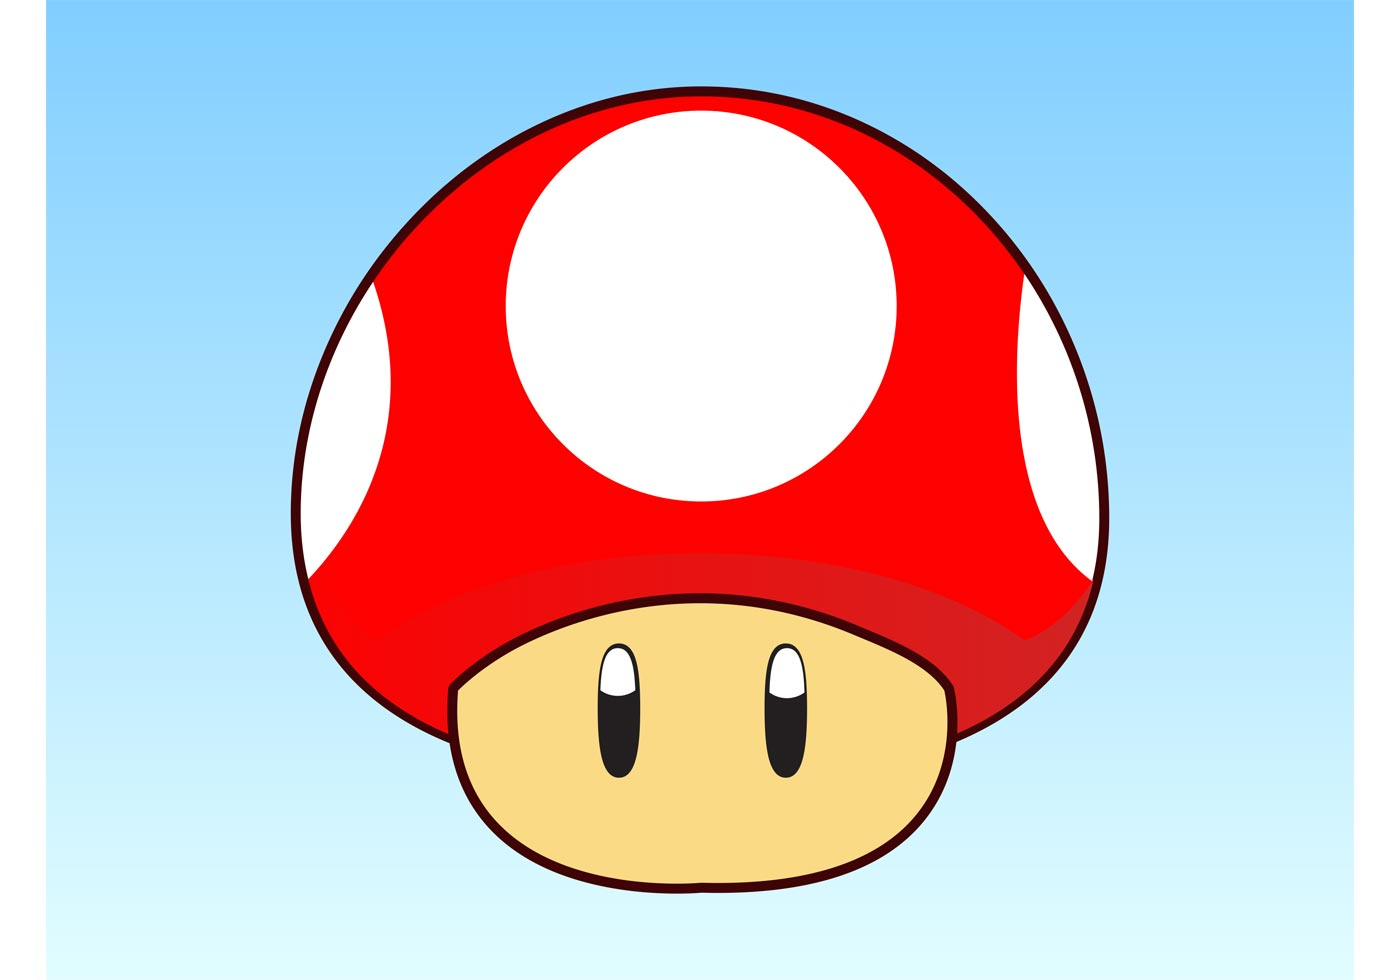 Images Of Cute Babies Wallpaper Free Download Super Mario Mushroom Download Free Vector Art Stock